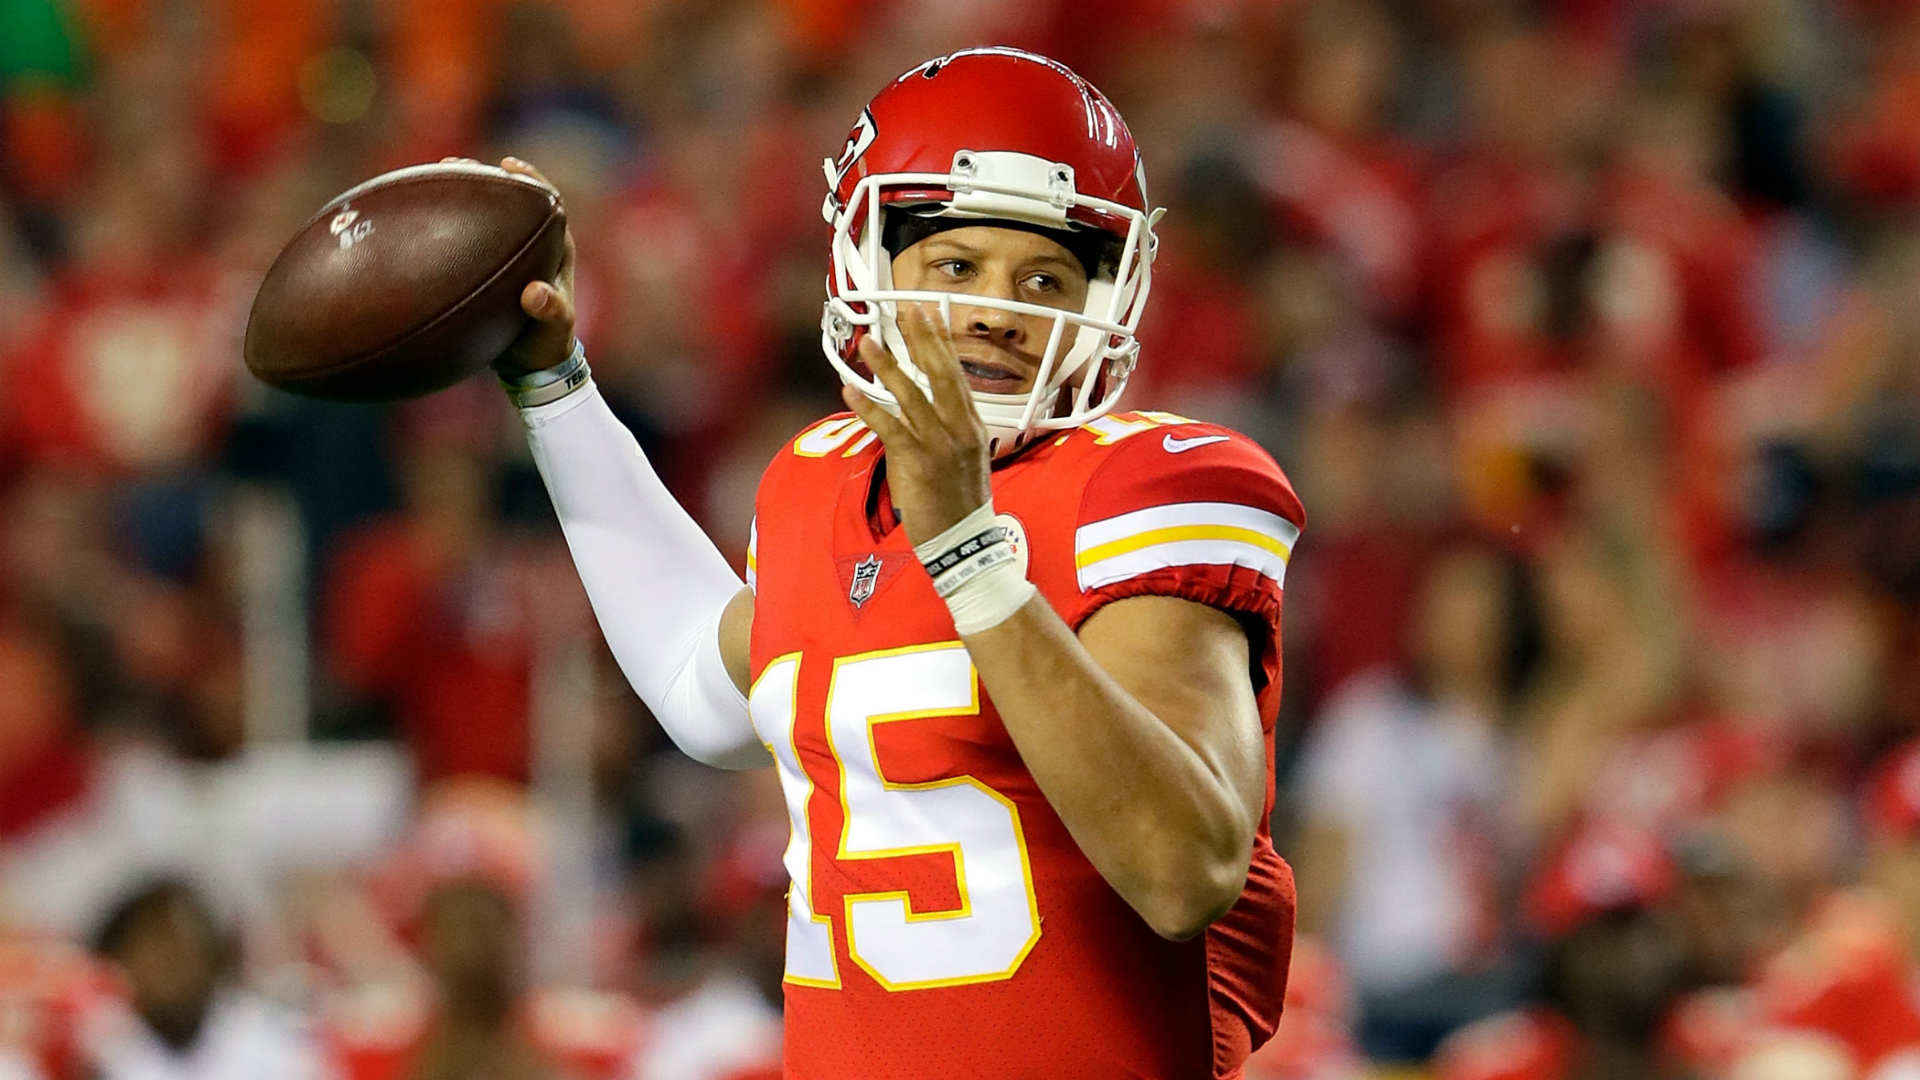 NFL preseason Week 4: Patrick Mahomes shows off big arm in ...